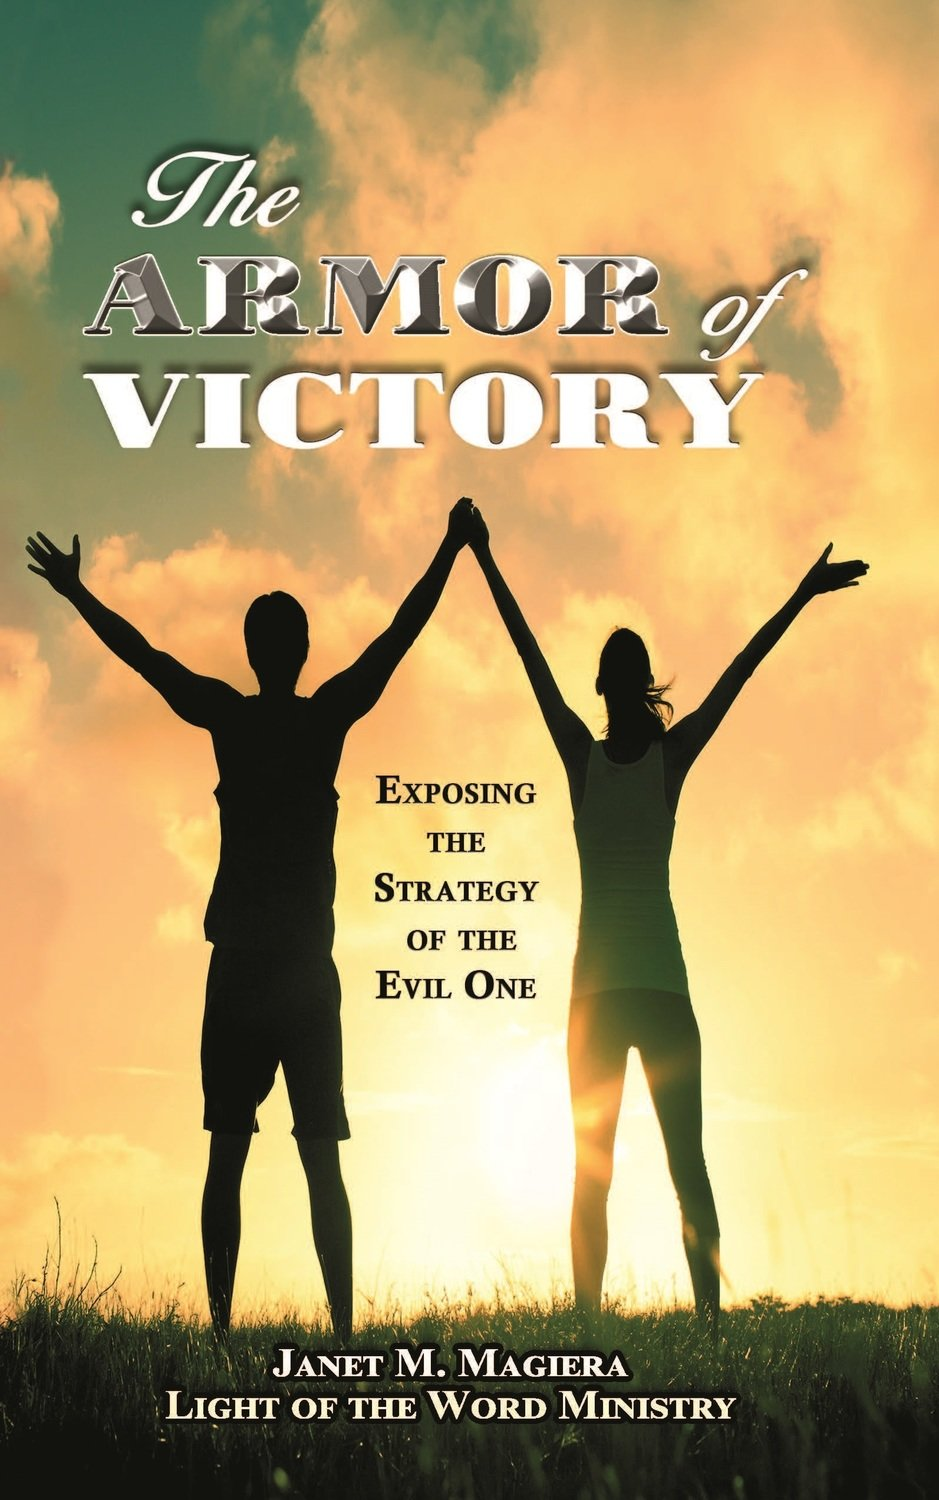 The Armor of Victory -- Exposing the Strategy of the Evil One